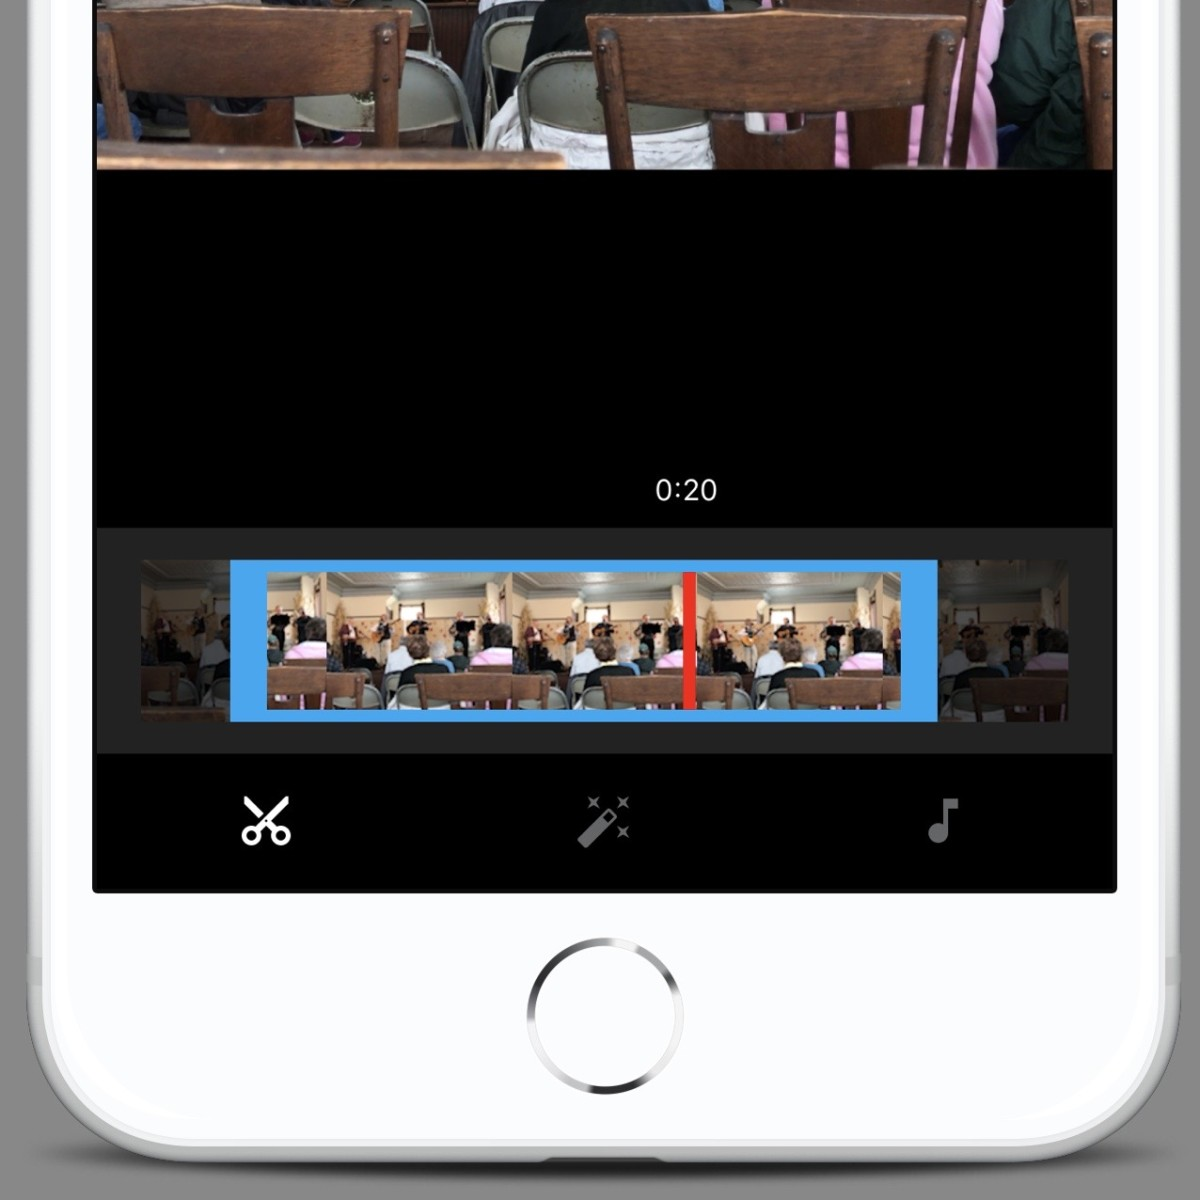 Use the trim tool to edit YouTube videos on mobile devices